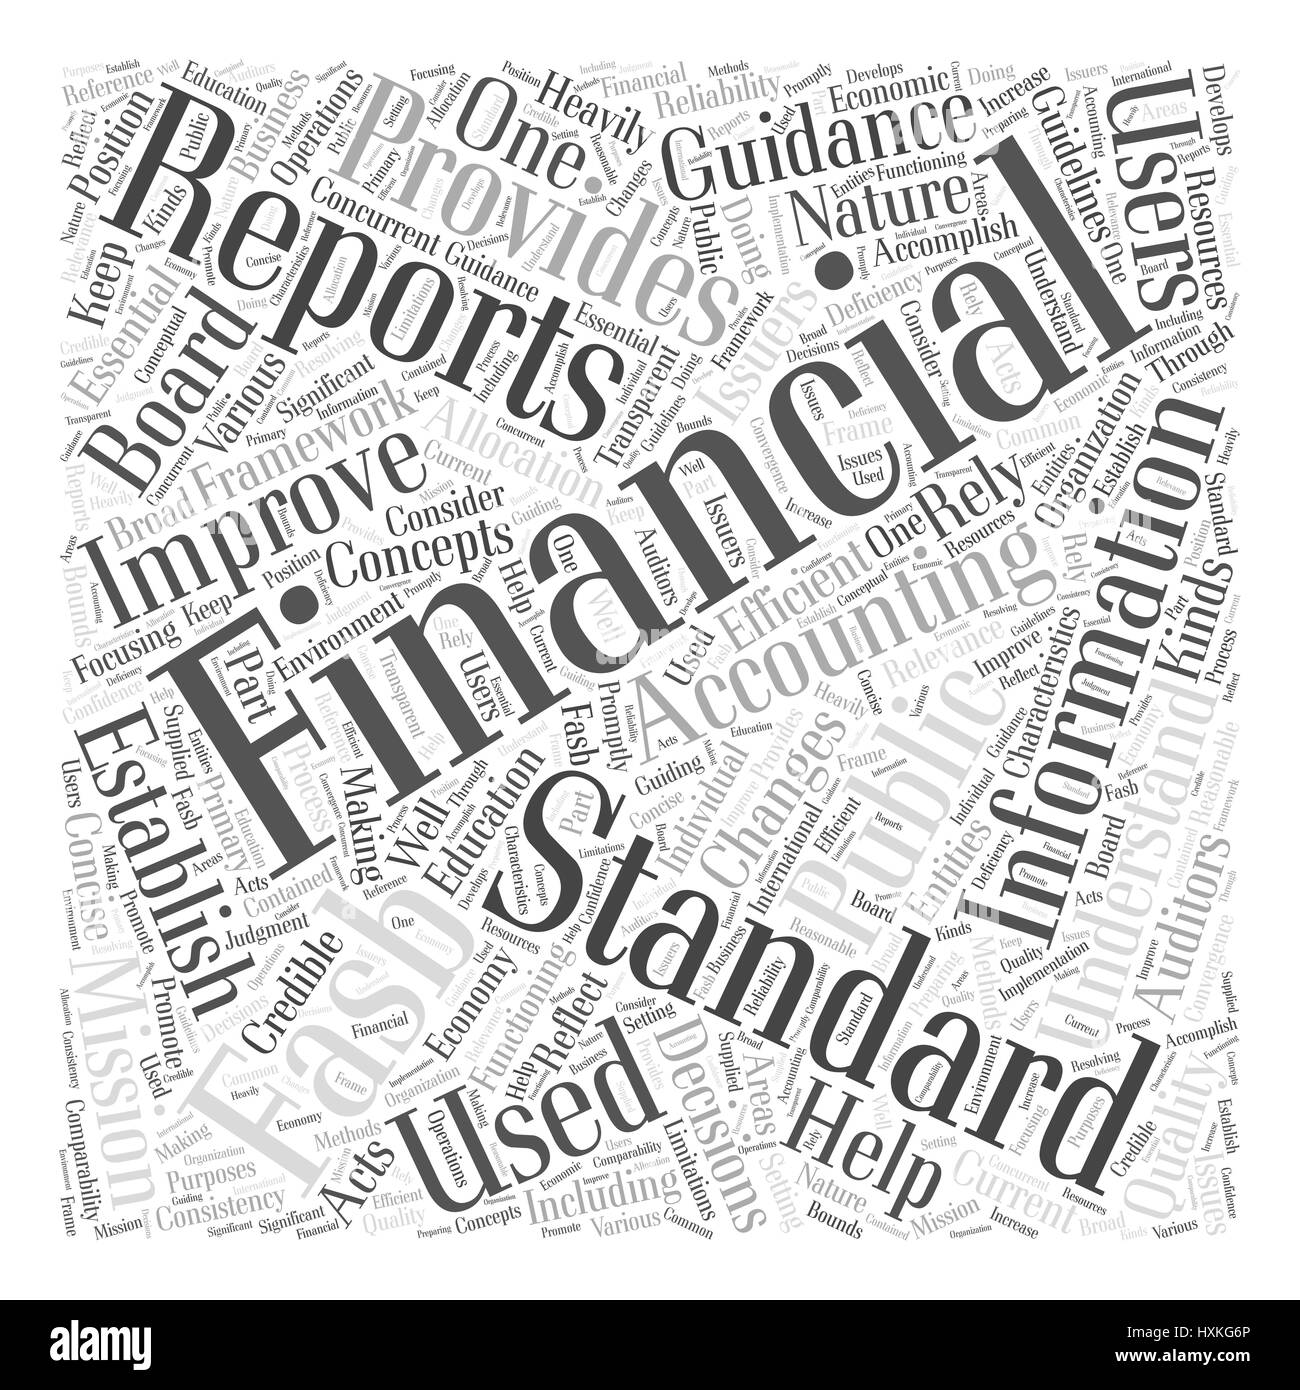 concept of accounting standards